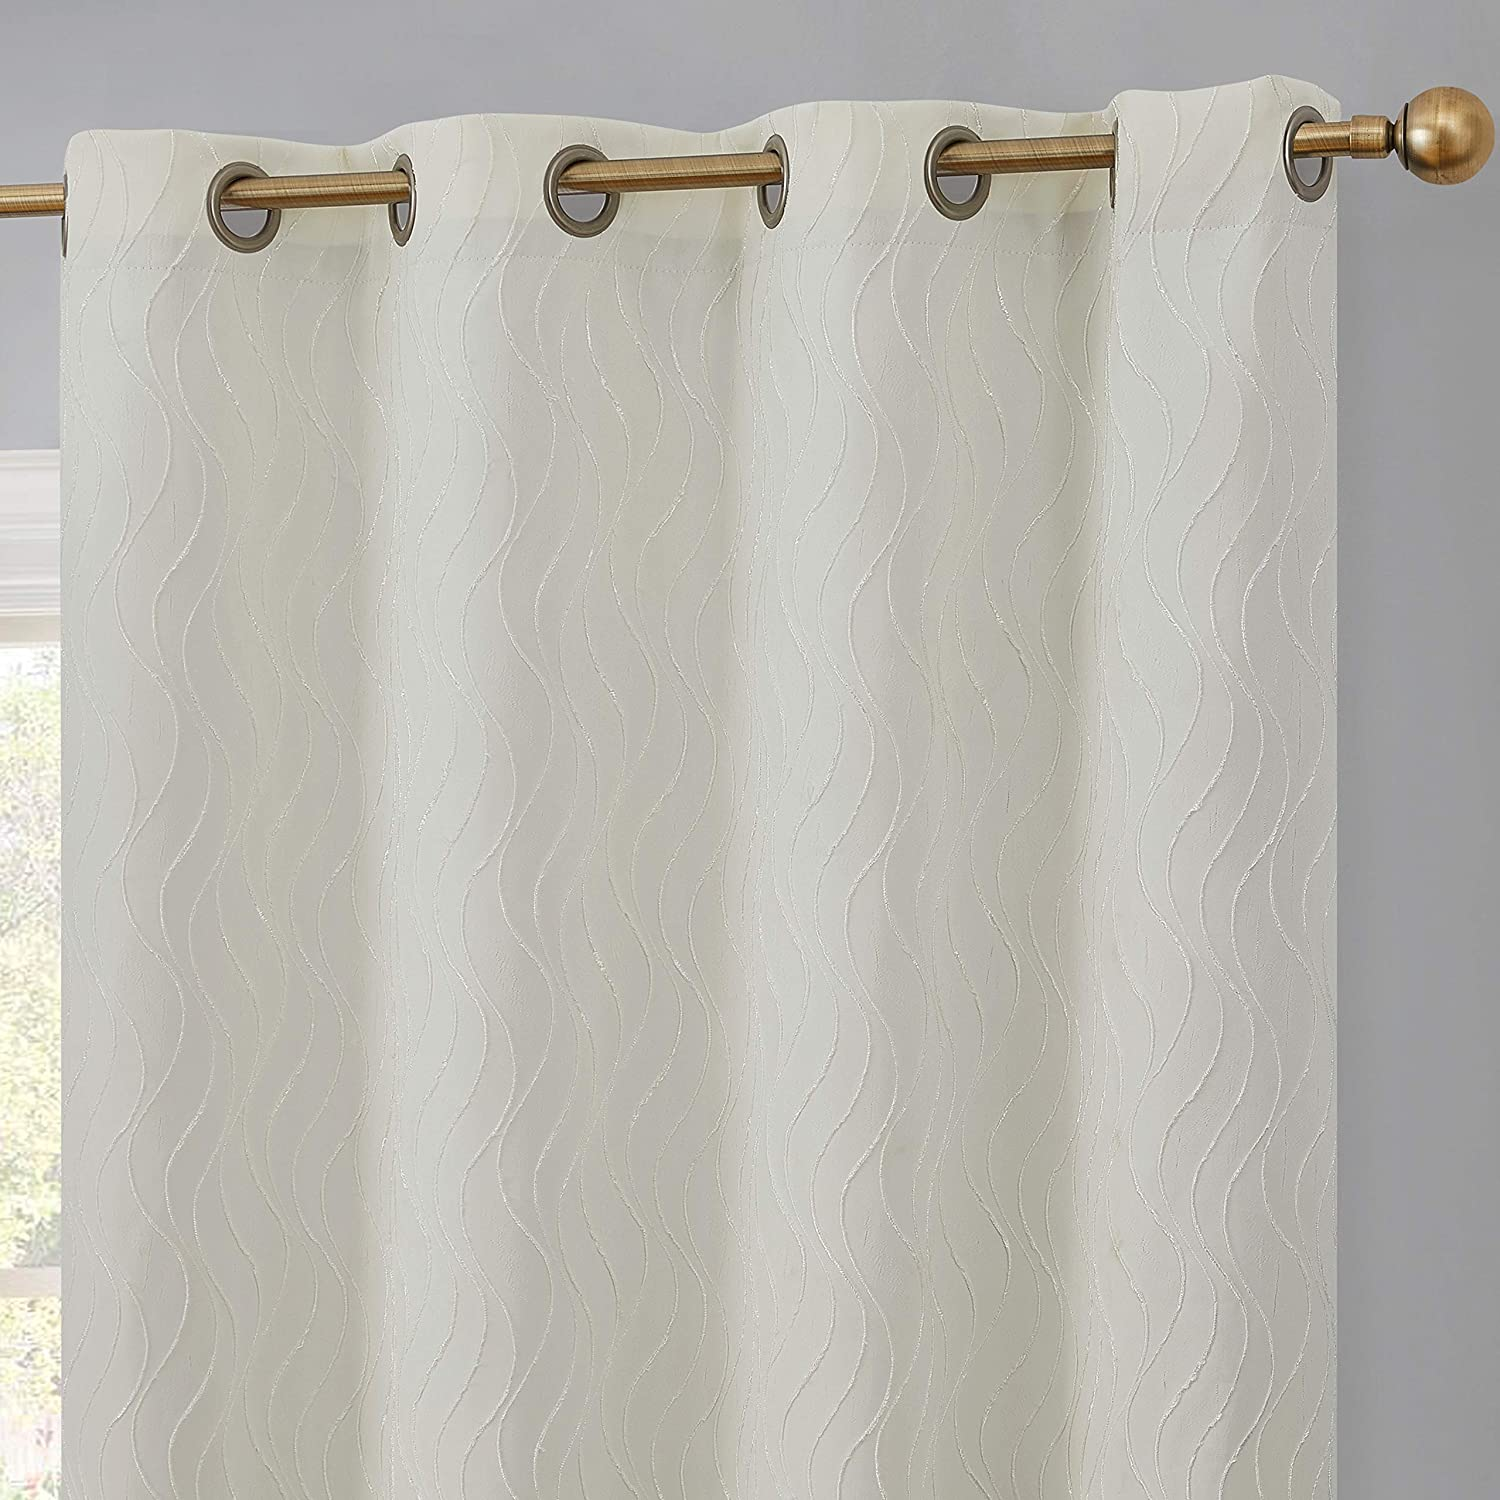 HLC.ME Camden 100% Complete Blackout Thermal Insulated Window Curtain Grommet Panels - Energy Efficient & Noise Reducing - Great for Living Room & Bedroom - Set of 2 (50  W x 108  L, Ivory)